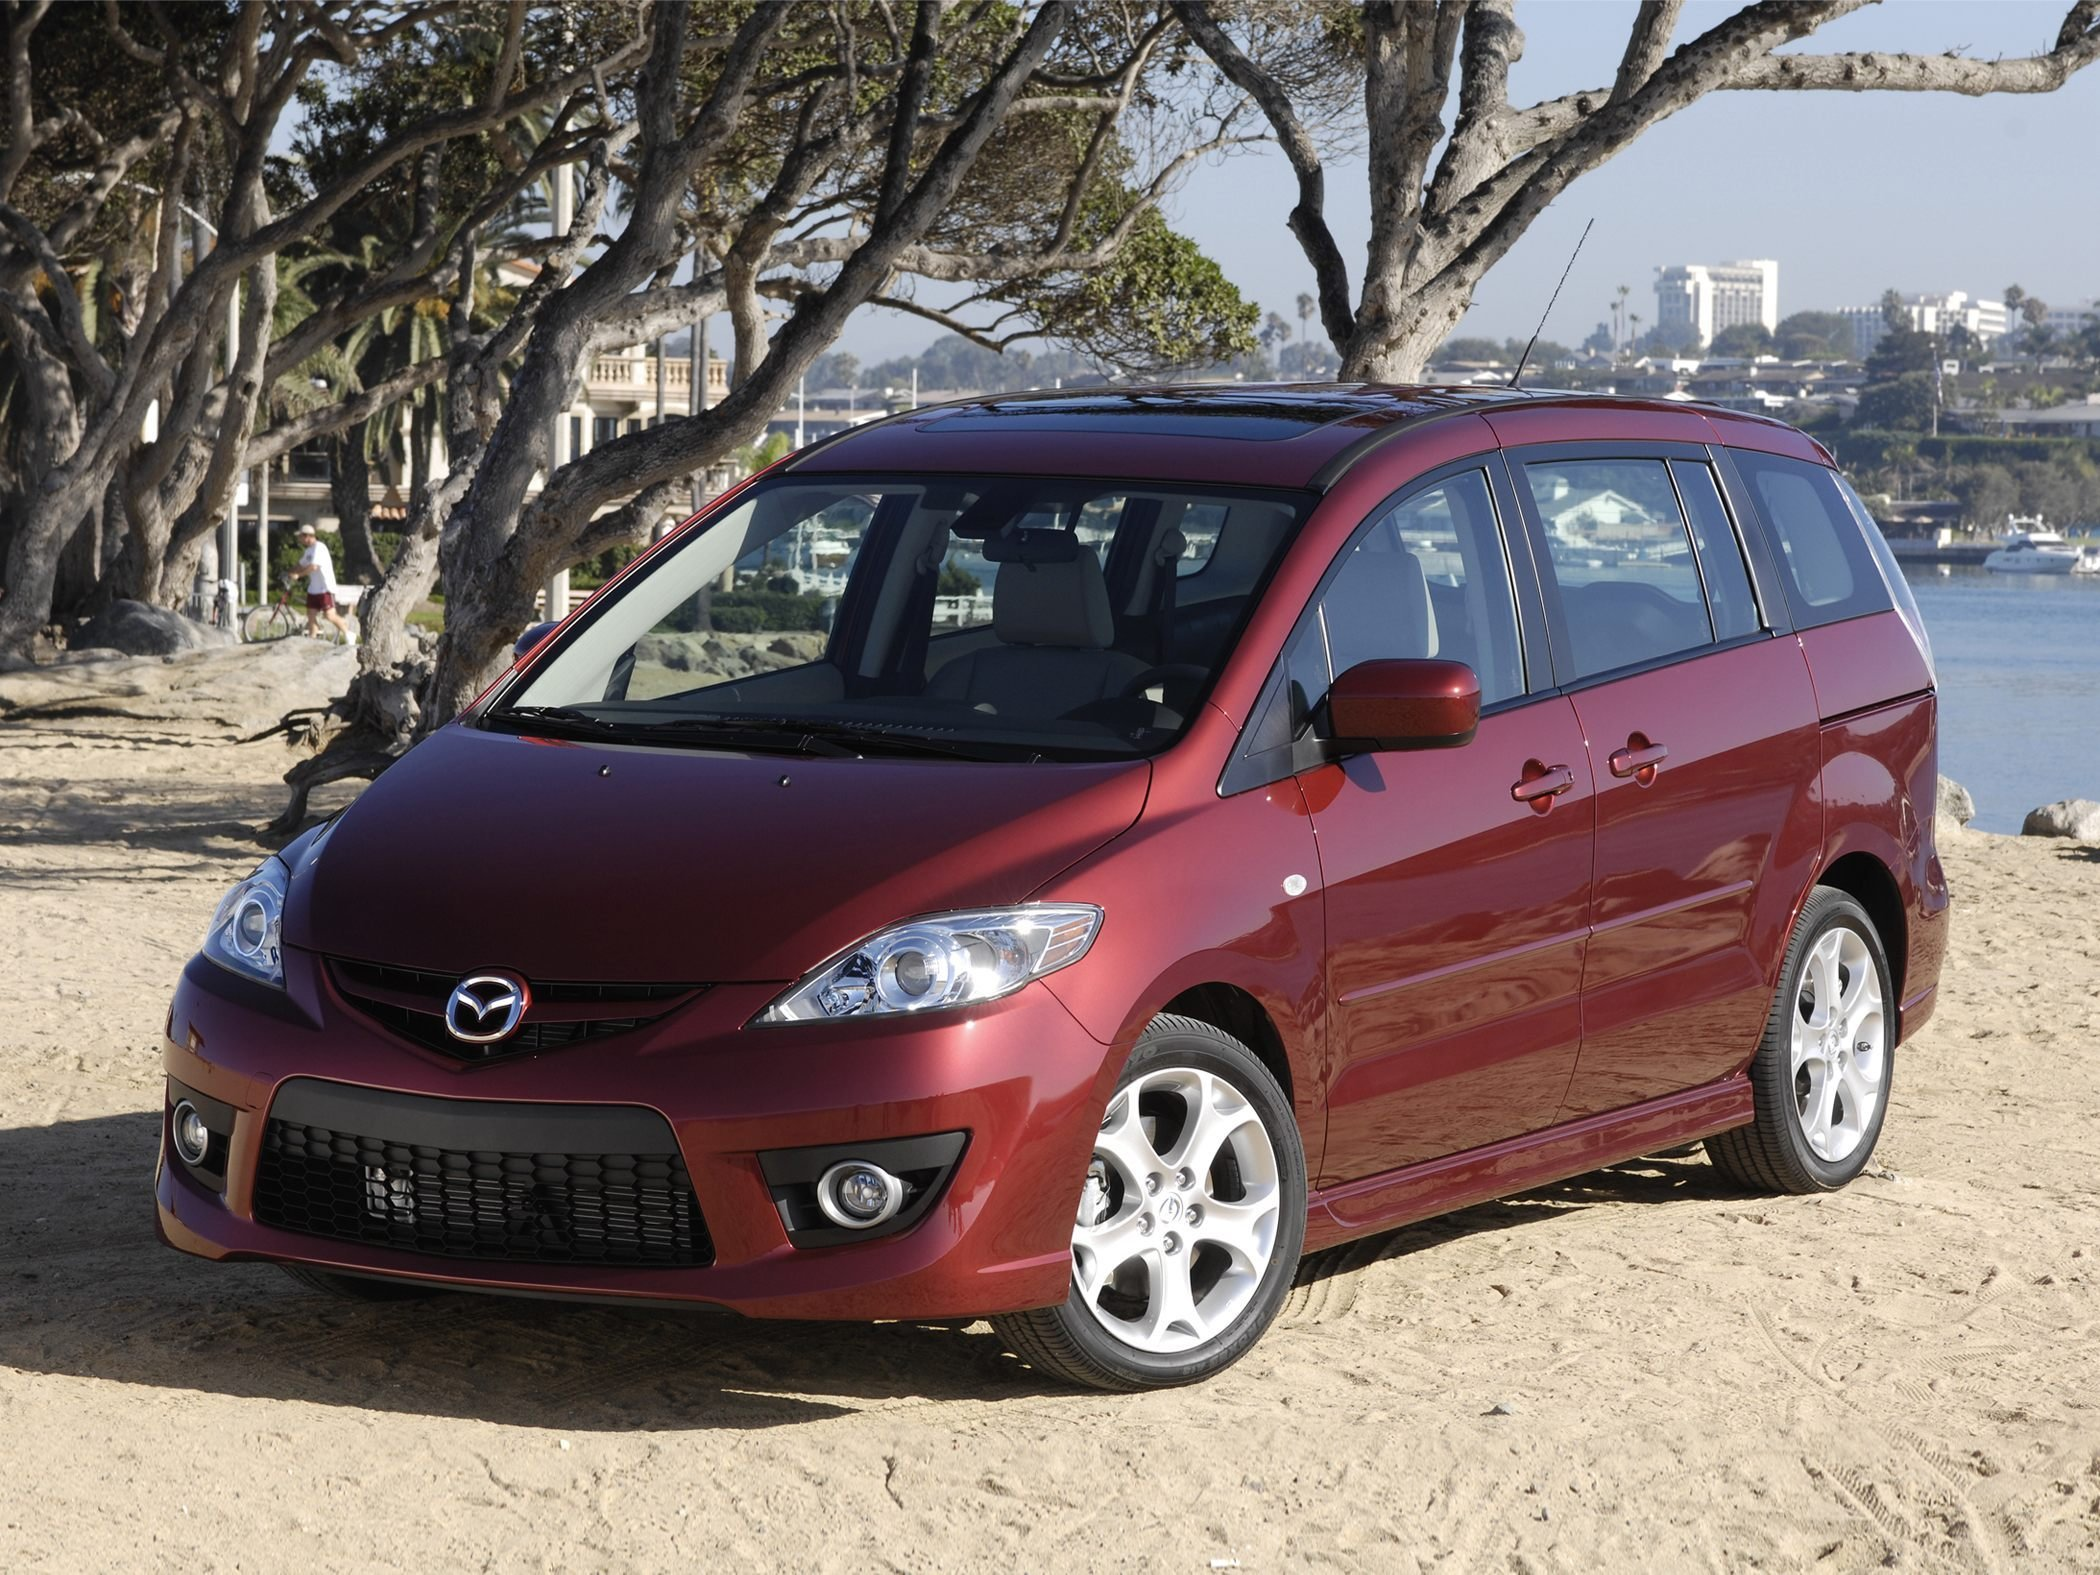 Latest 2010 Mazda Mazda5 Price Photos Reviews Features Free Download